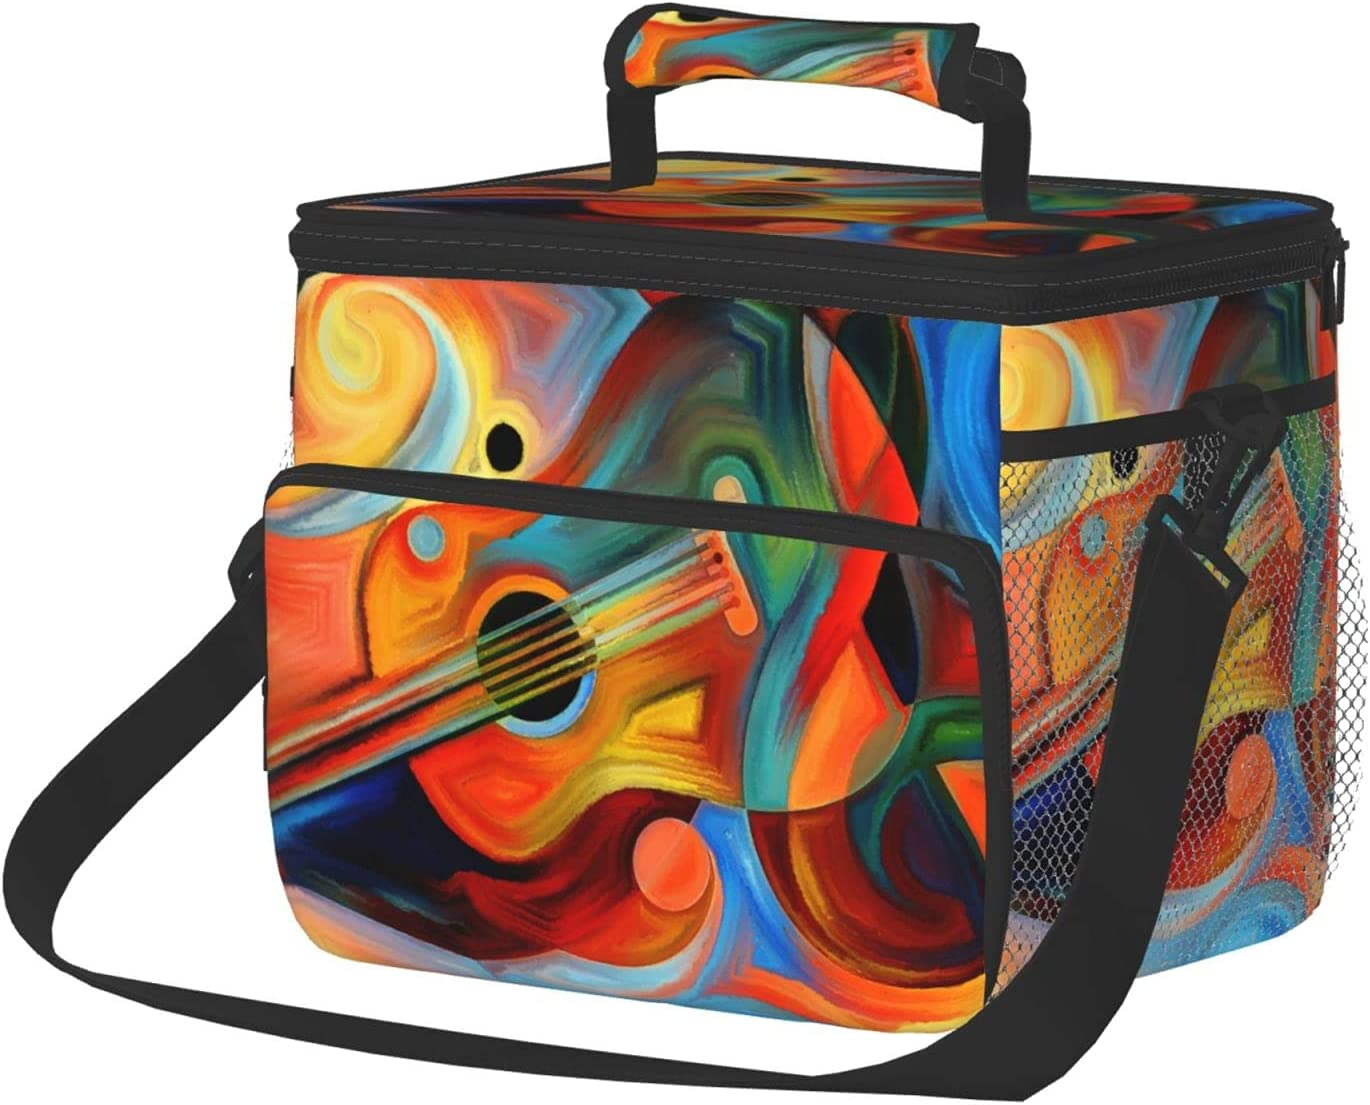 Insulated Lunch Bag For Women Men Box Reusable Daily bargain sale outlet Office